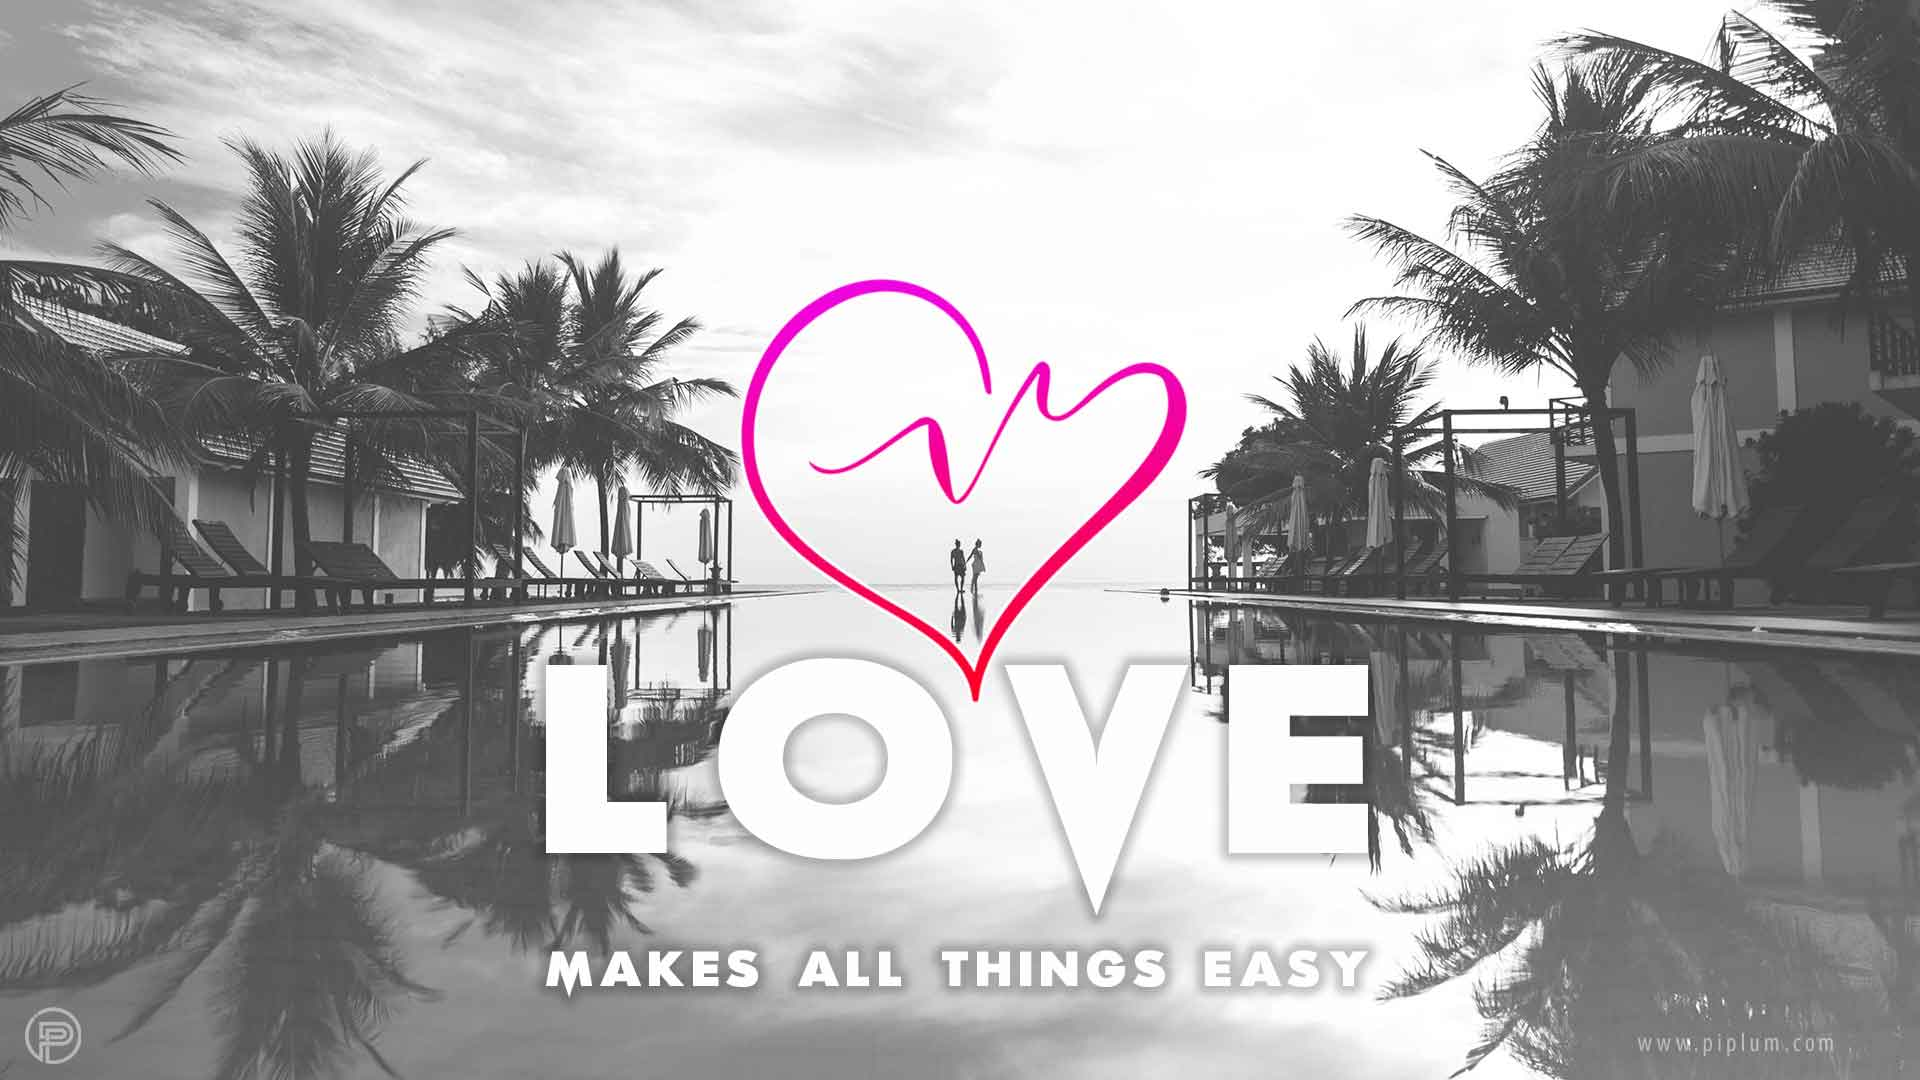 Love-makes-all-things-easy-couple-pool-palms-motivational-quote